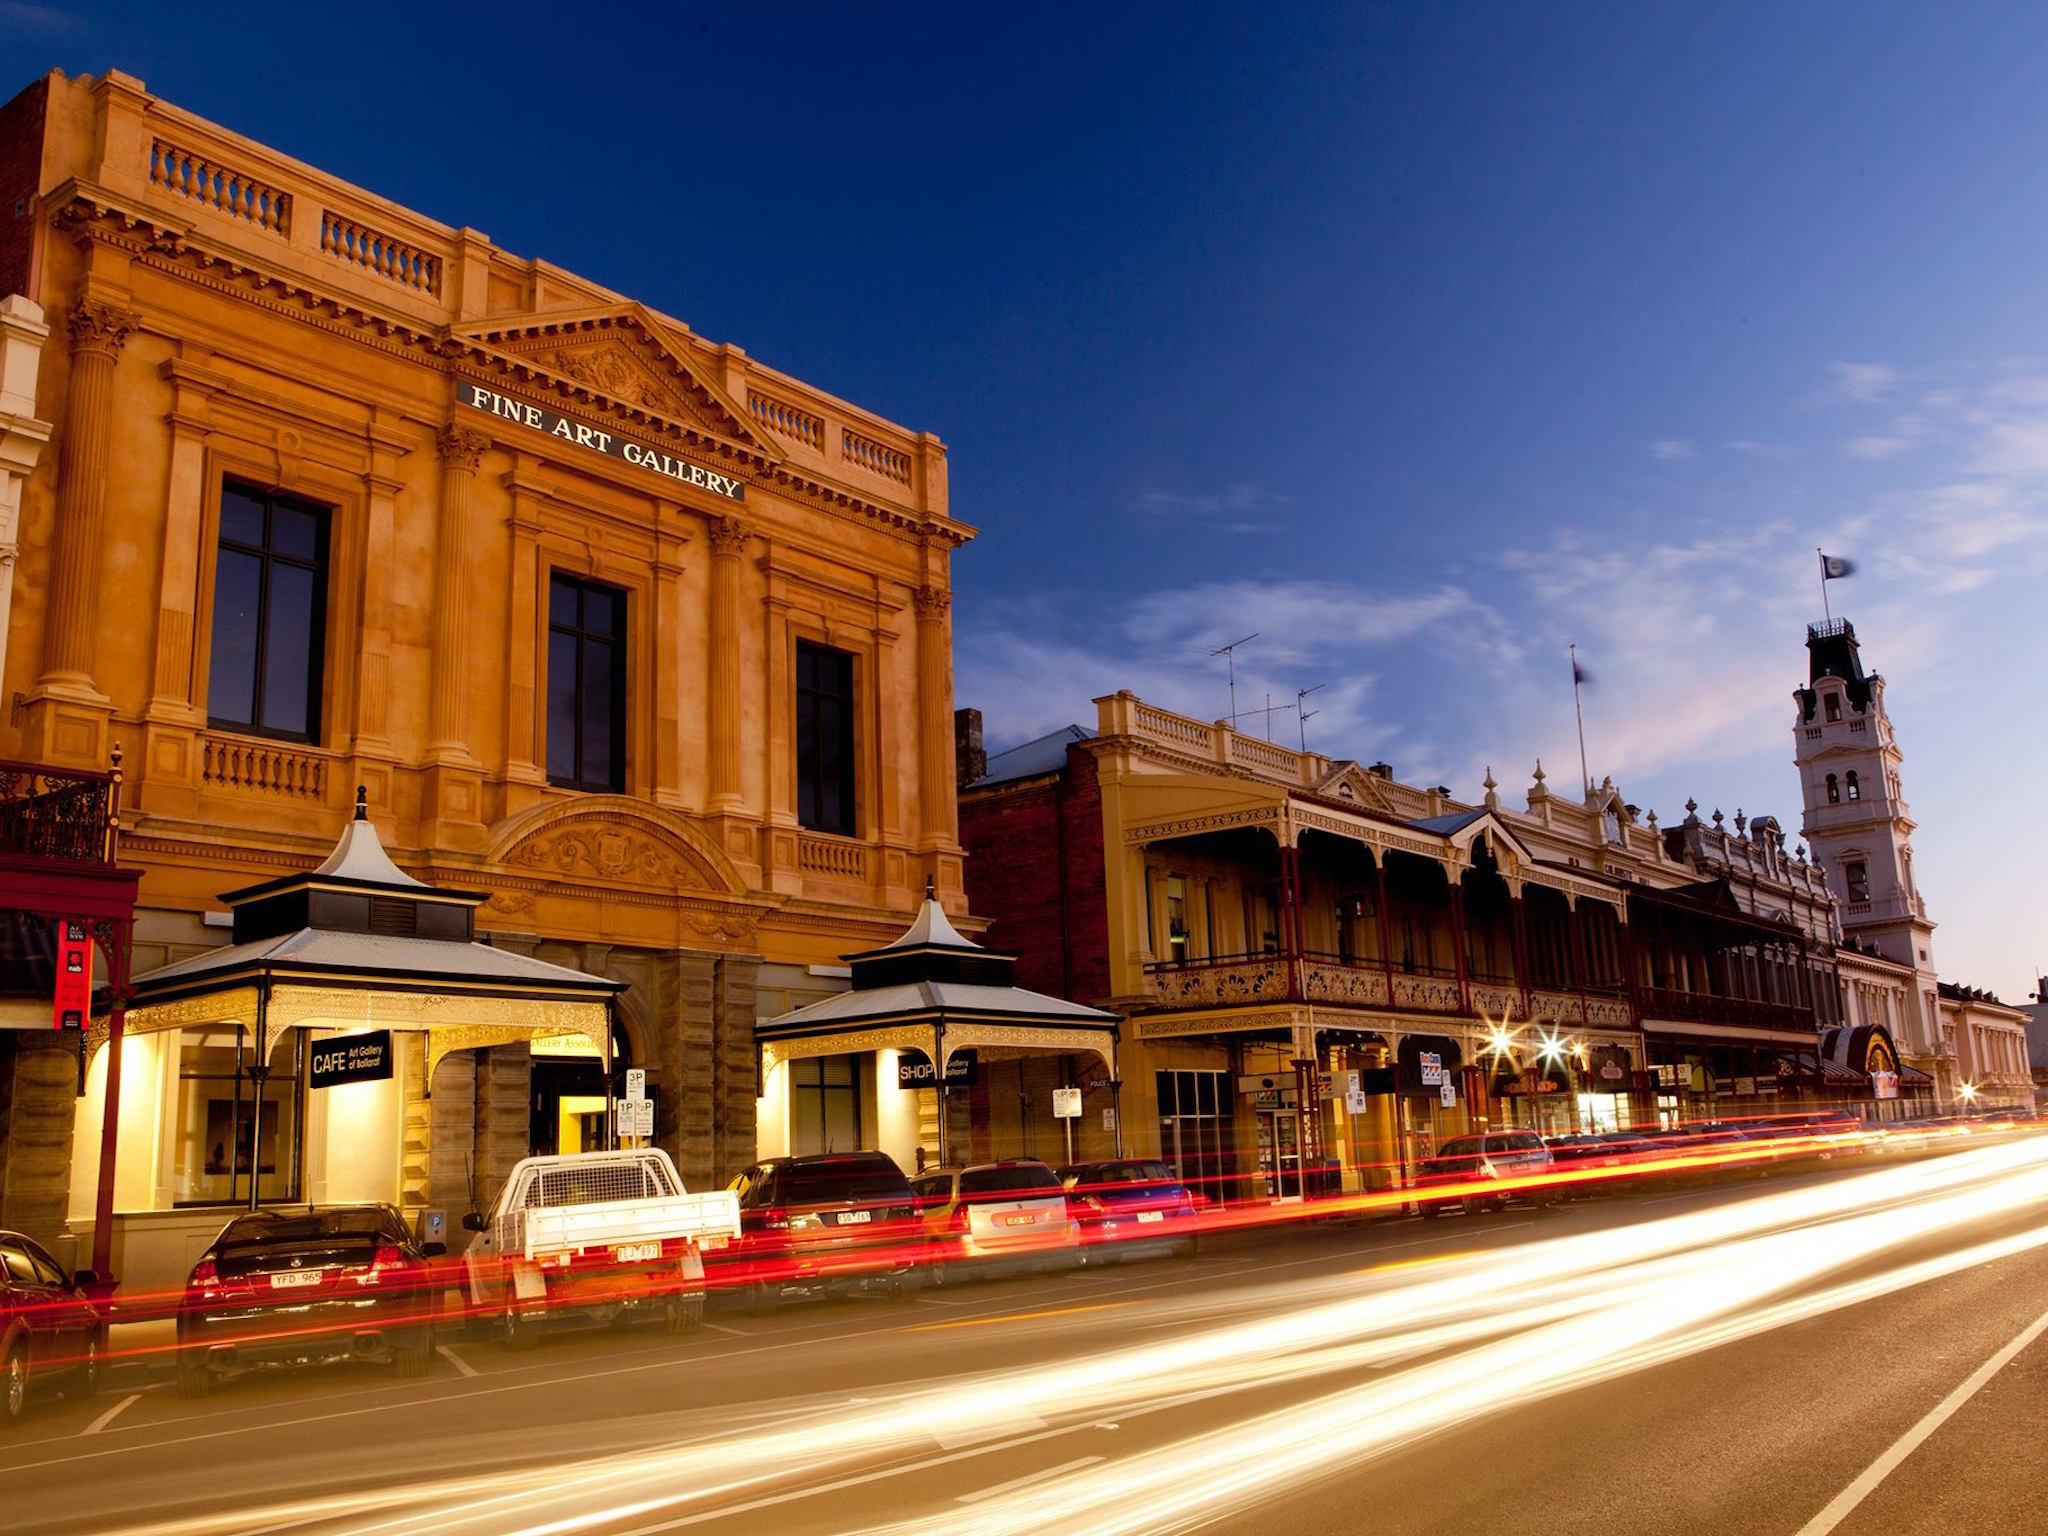 Open House Melbourne is expanding to Ballarat this October